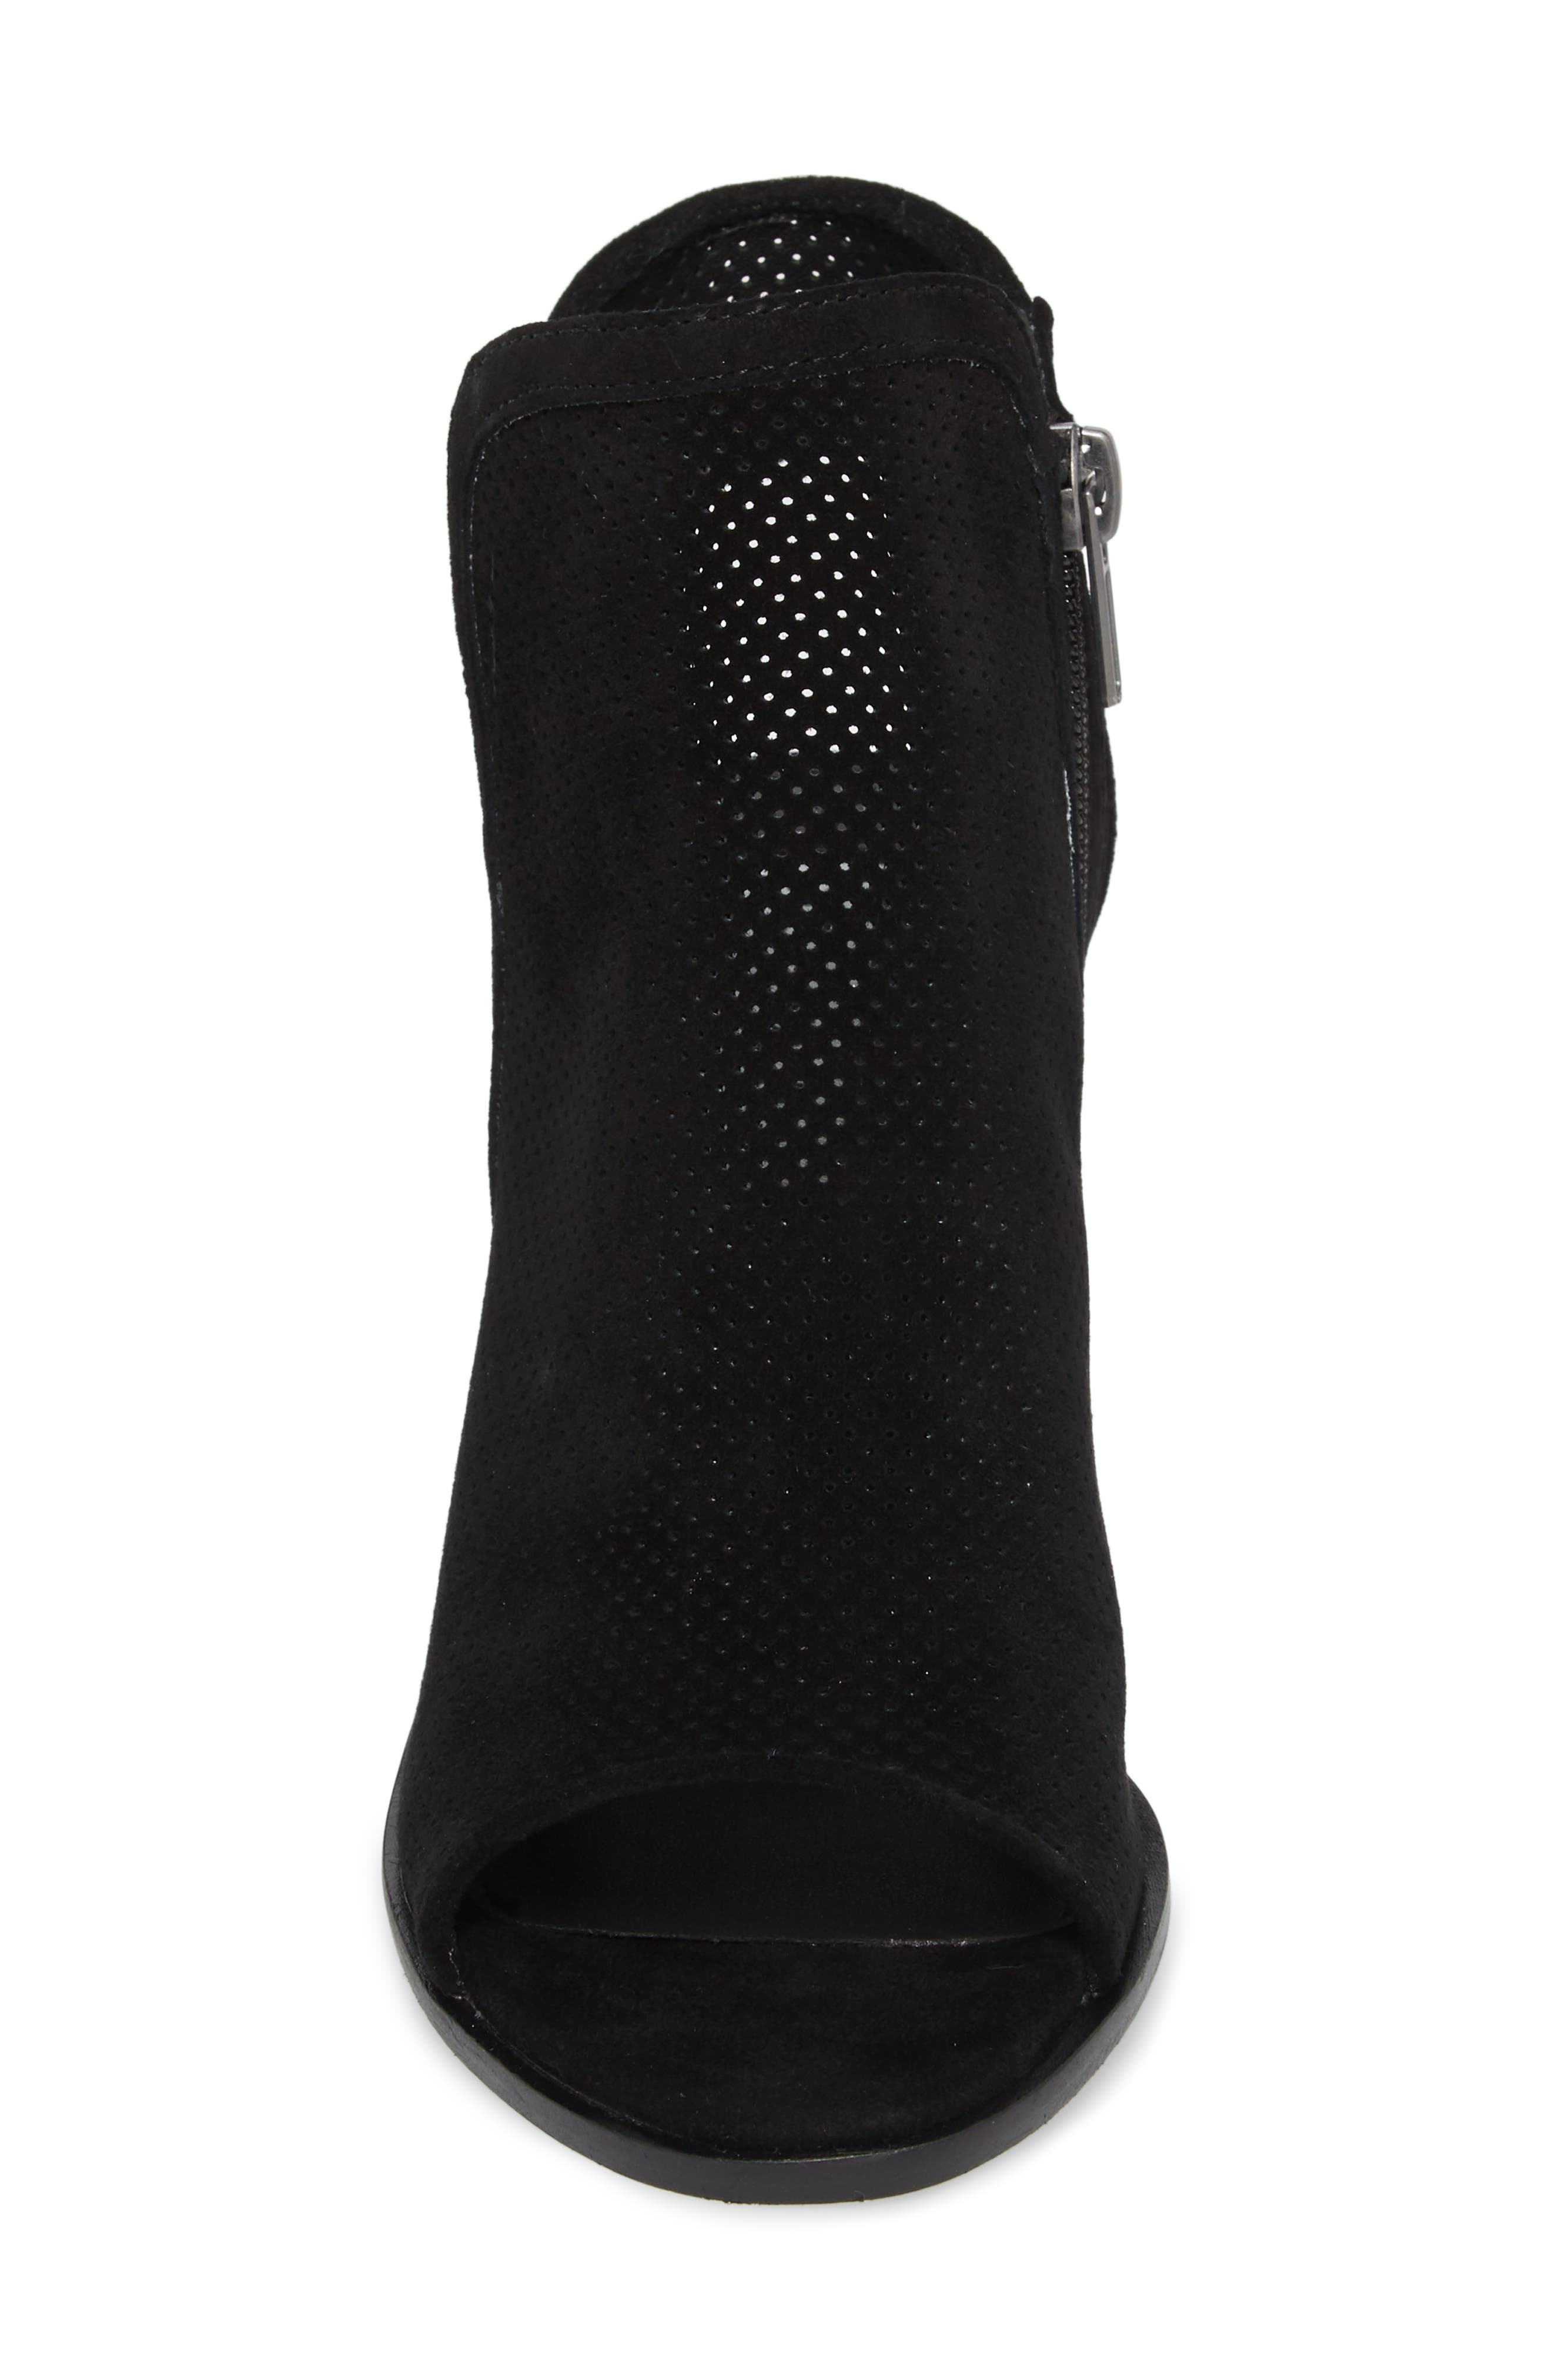 Maxine Perforated Bootie,                             Alternate thumbnail 4, color,                             006